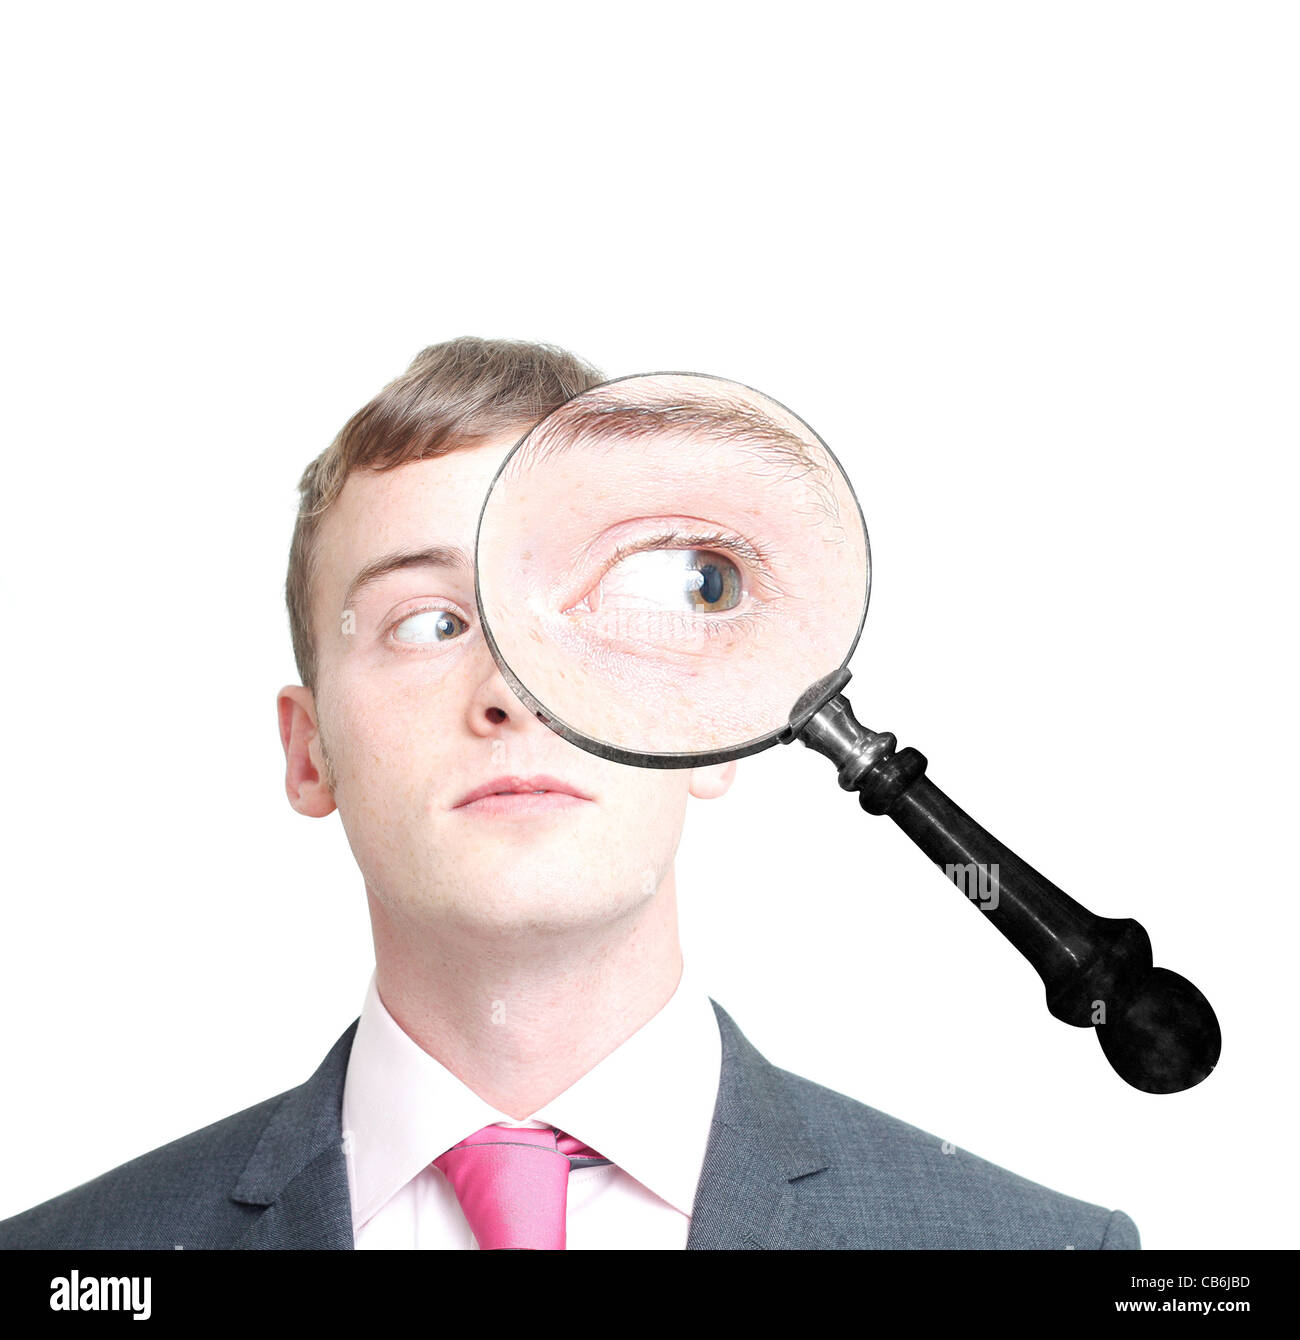 Investigating - Stock Image